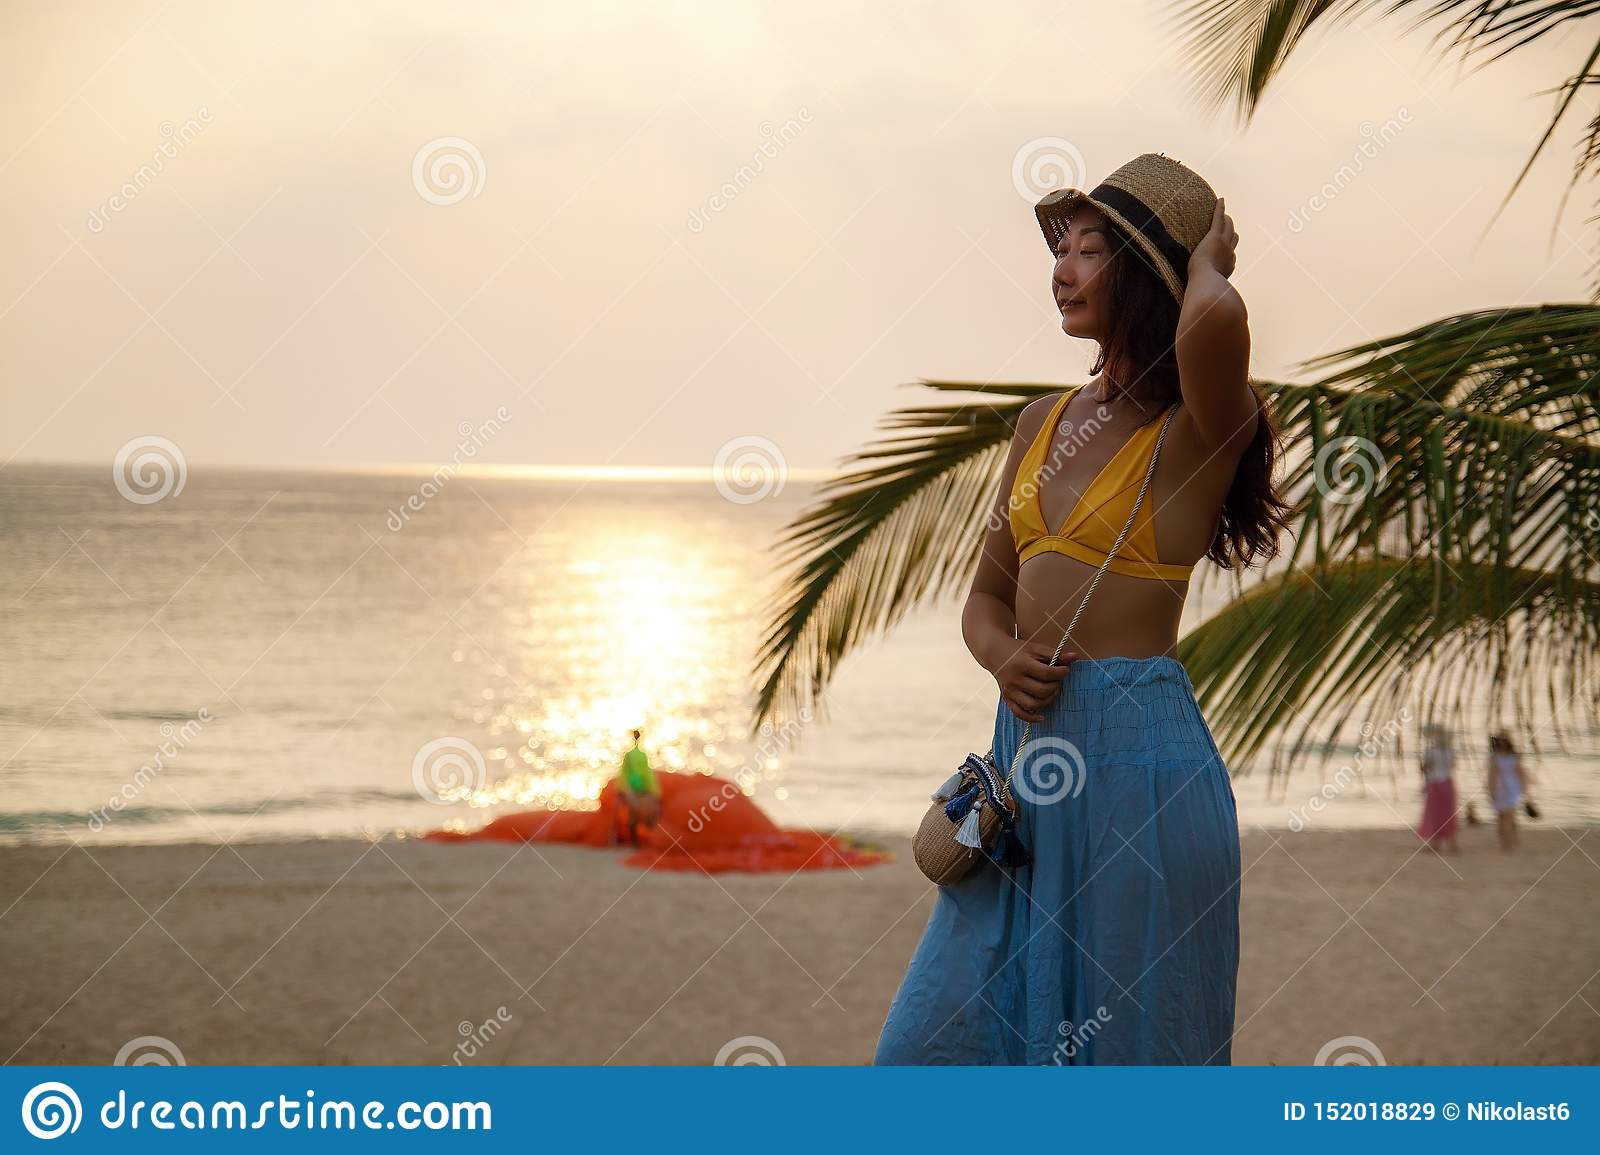 Cheerful young asian woman near palm tree on beach at sunset.